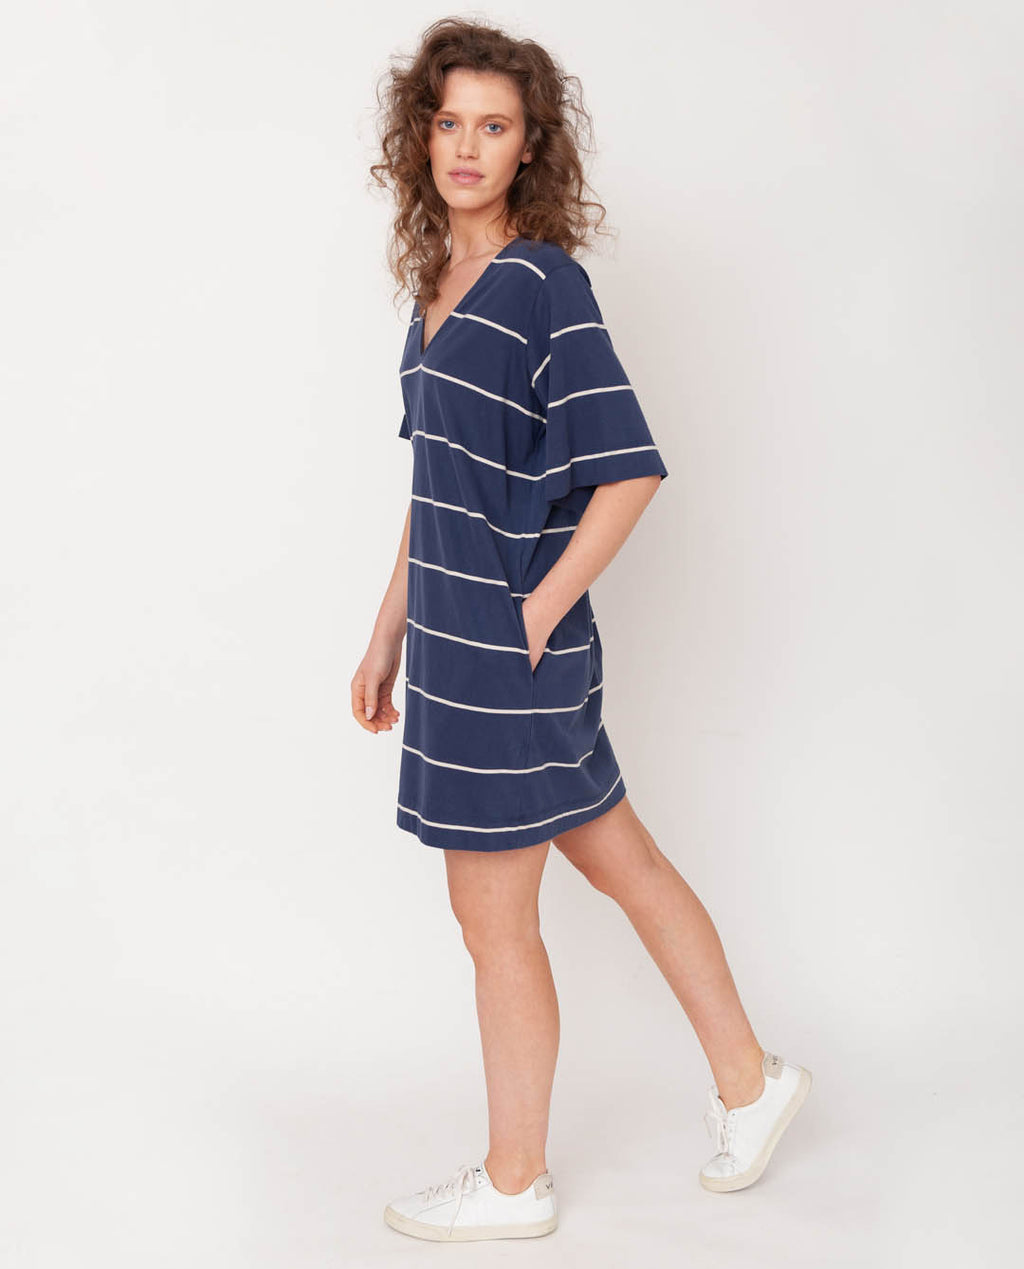 Sasha-Sue Organic Cotton Dress In Midnight & Natural